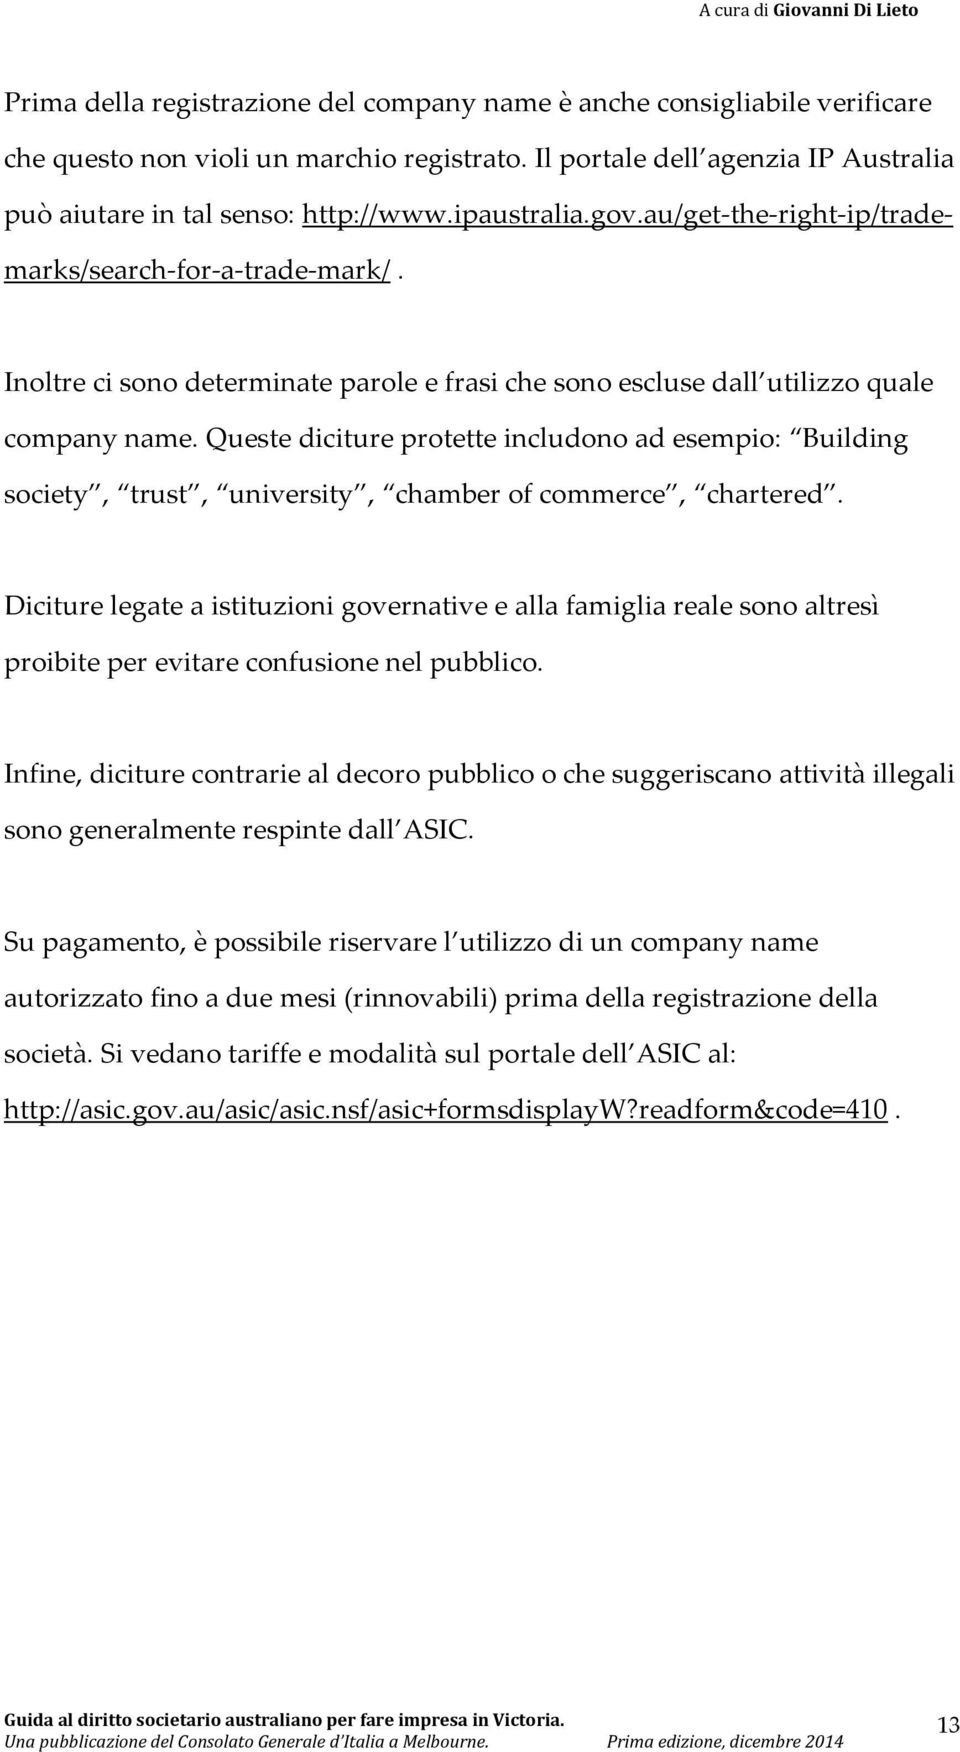 Queste diciture protette includono ad esempio: Building society, trust, university, chamber of commerce, chartered.